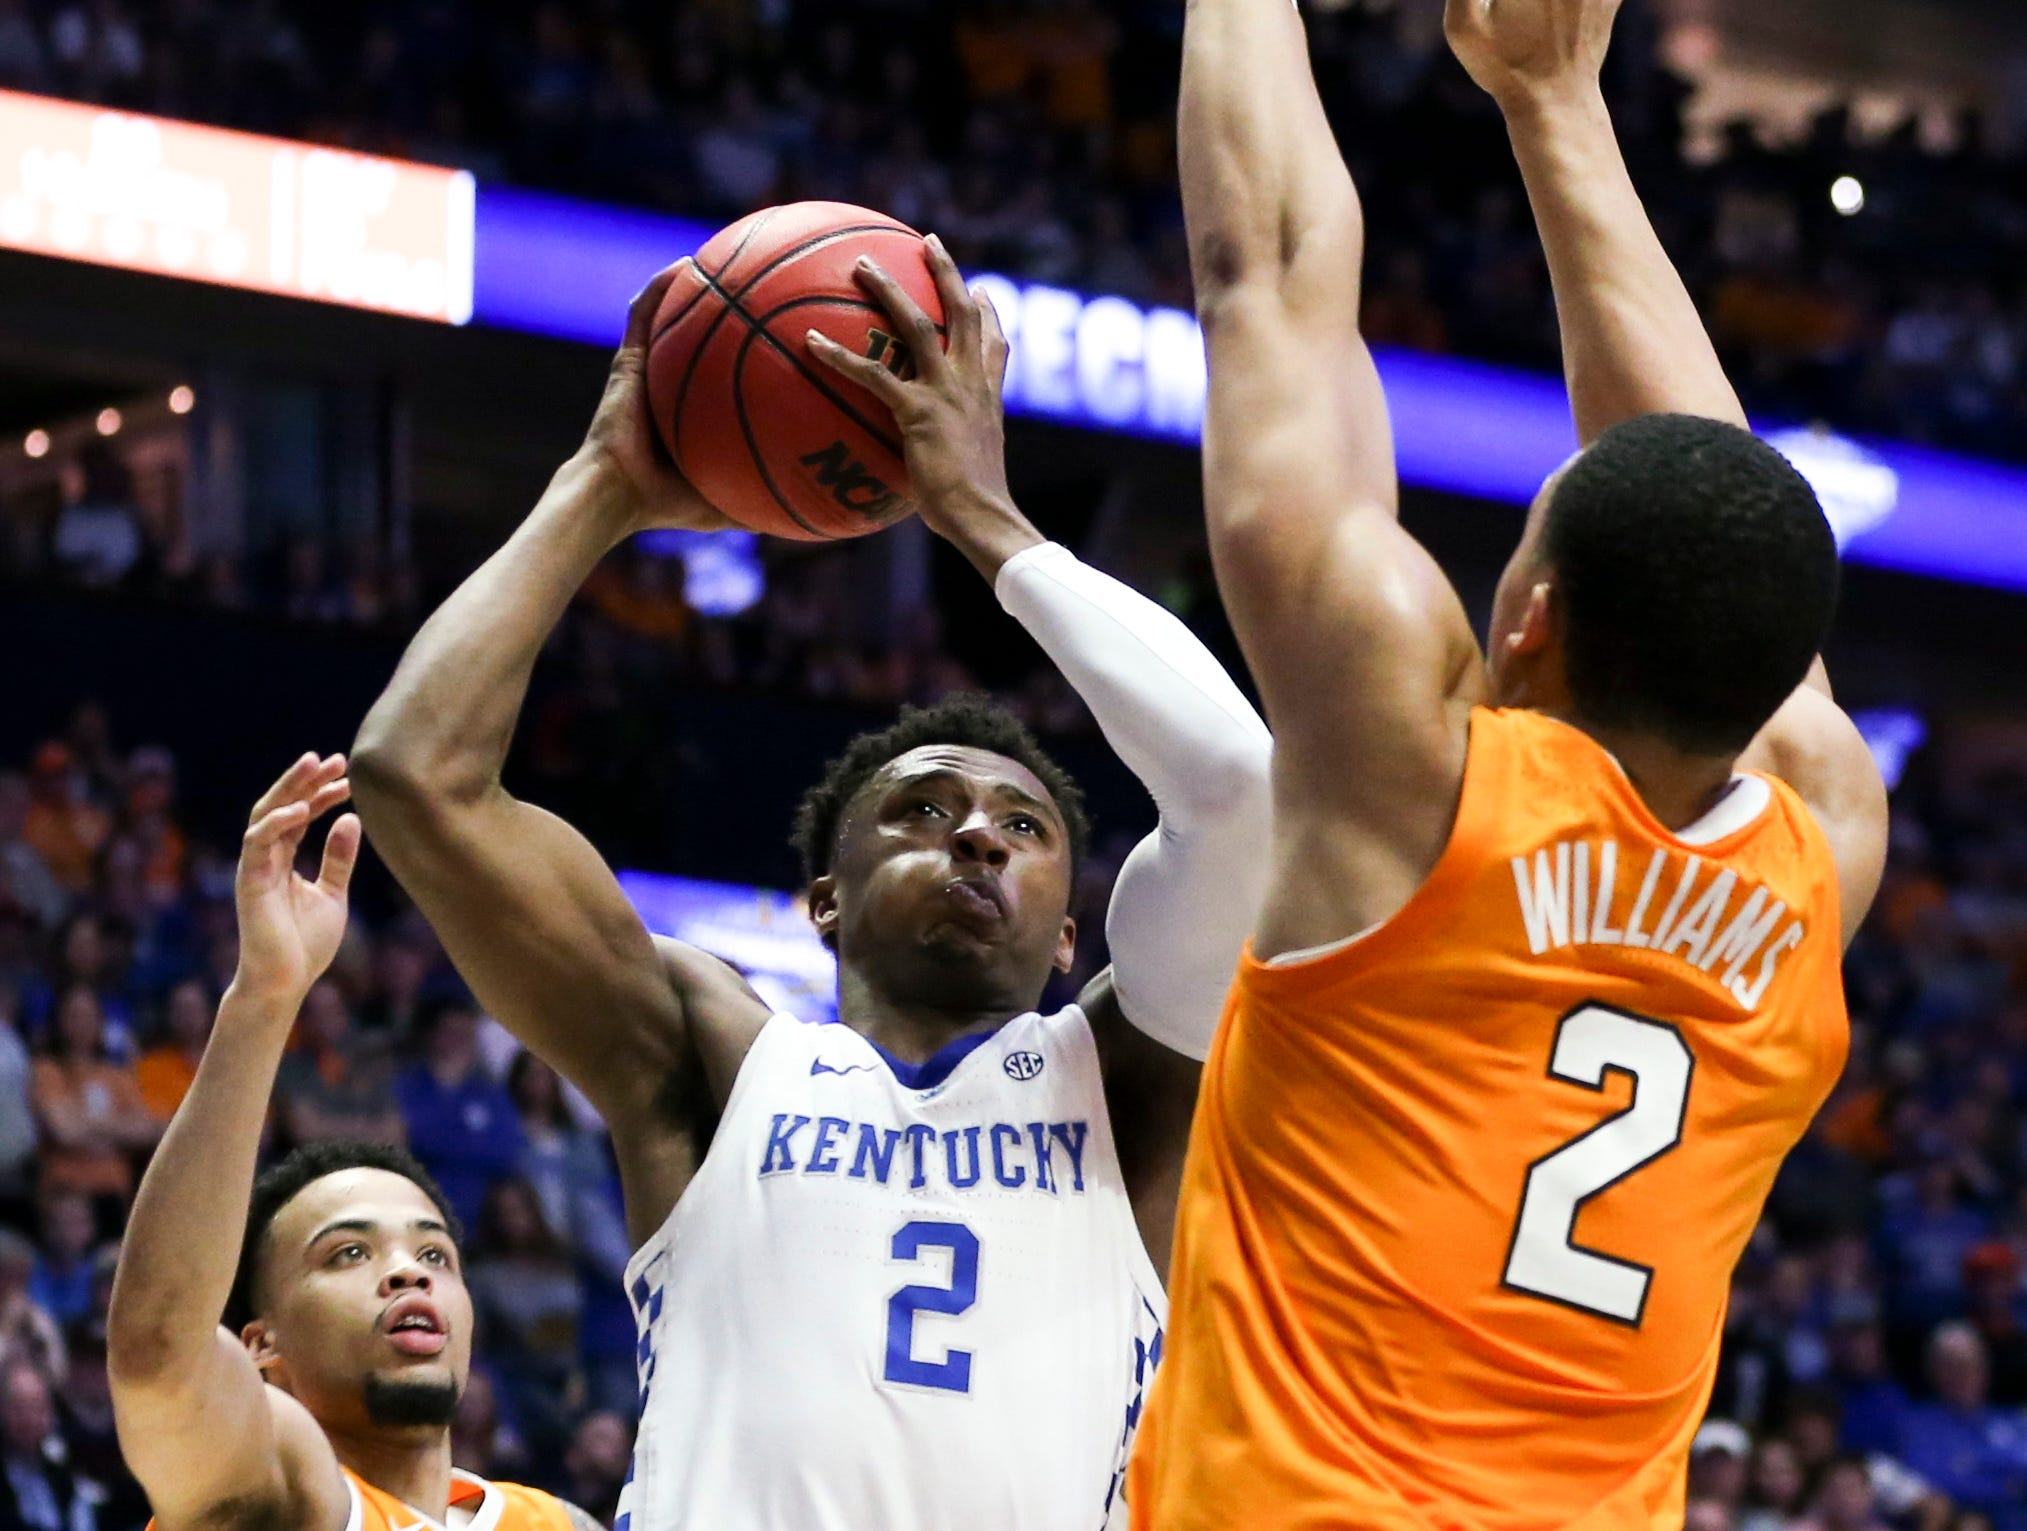 Kentucky guard Ashton Hagans (2) shoots into Tennessee forward Grant Williams (2) during the first half of the SEC Men's Basketball Tournament semifinal game at Bridgestone Arena in Nashville, Tenn., Saturday, March 16, 2019.